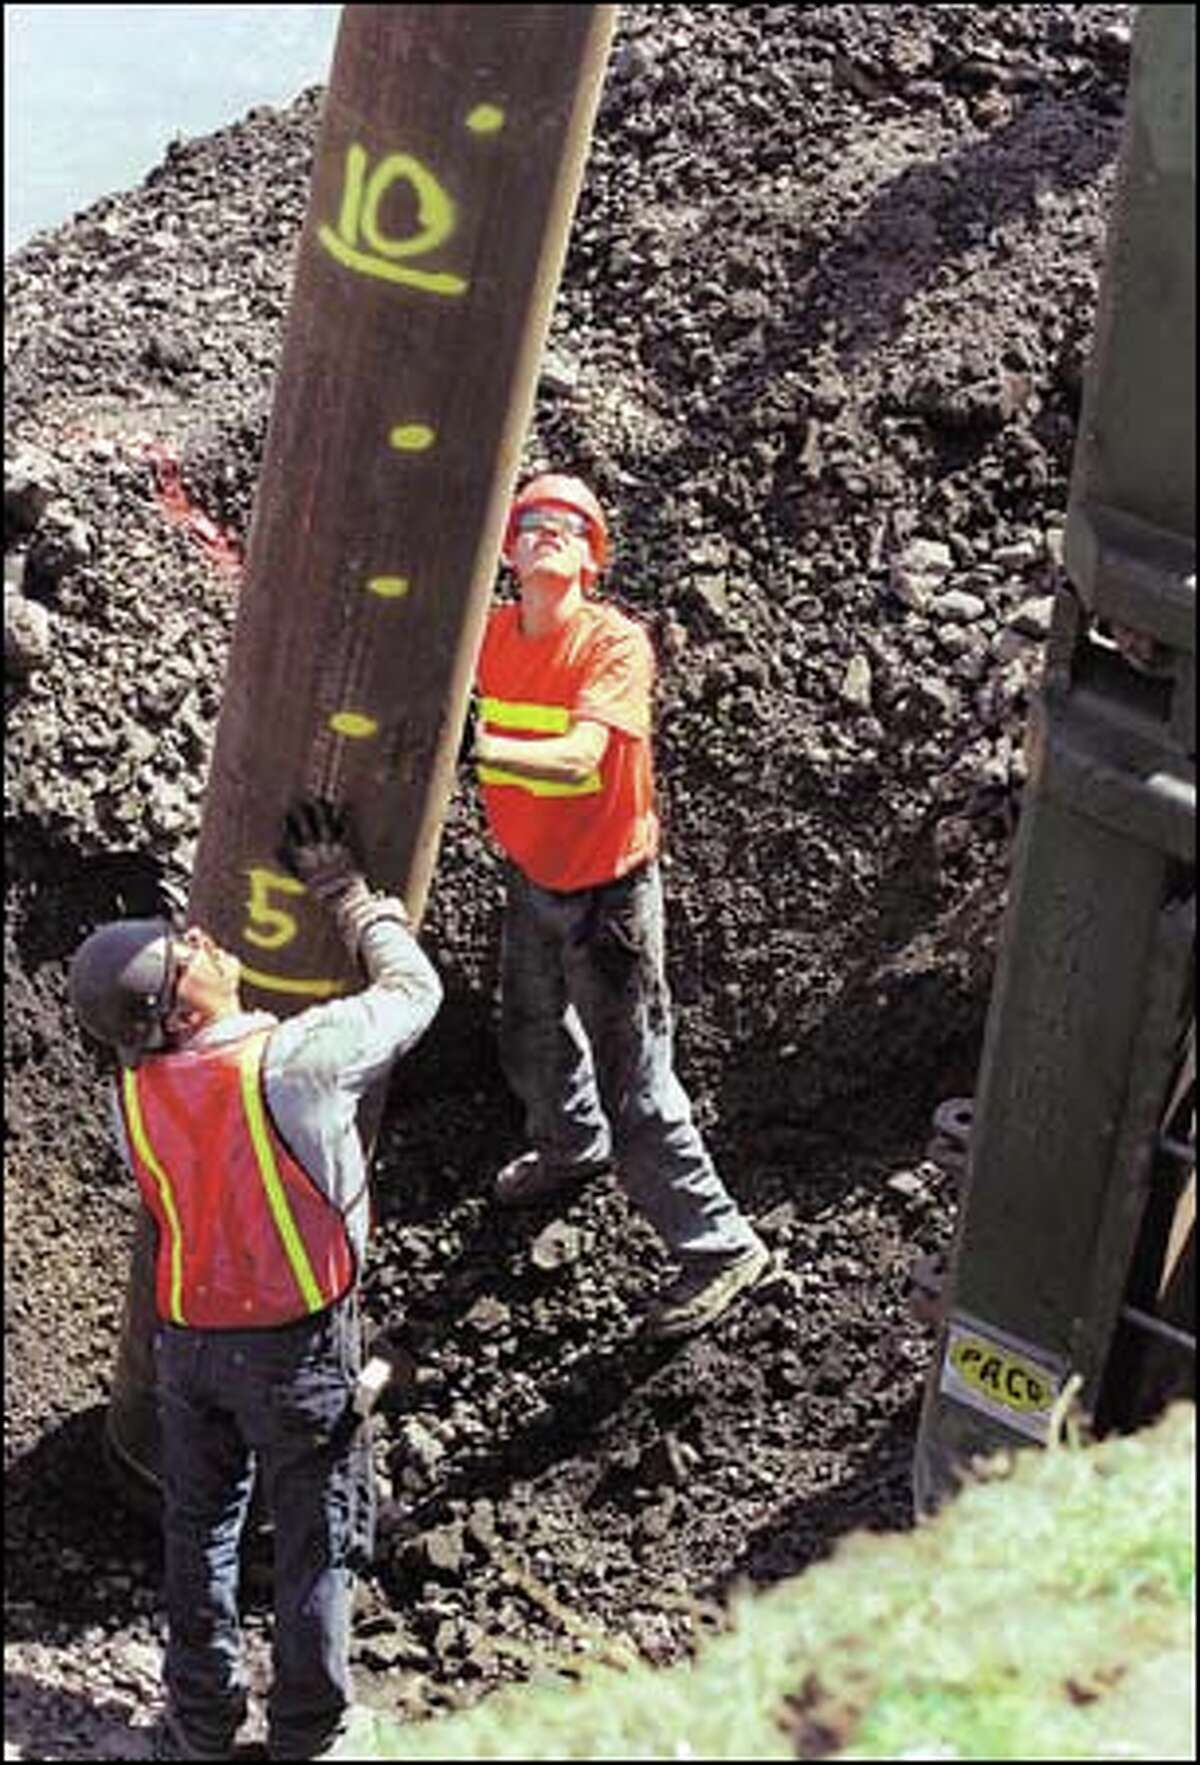 Bill Hobson, a journymen pile driver, and Jeremy Nielsen, an apprentice pile driver, place a pile at Pier D on the Tacoma waterfront.